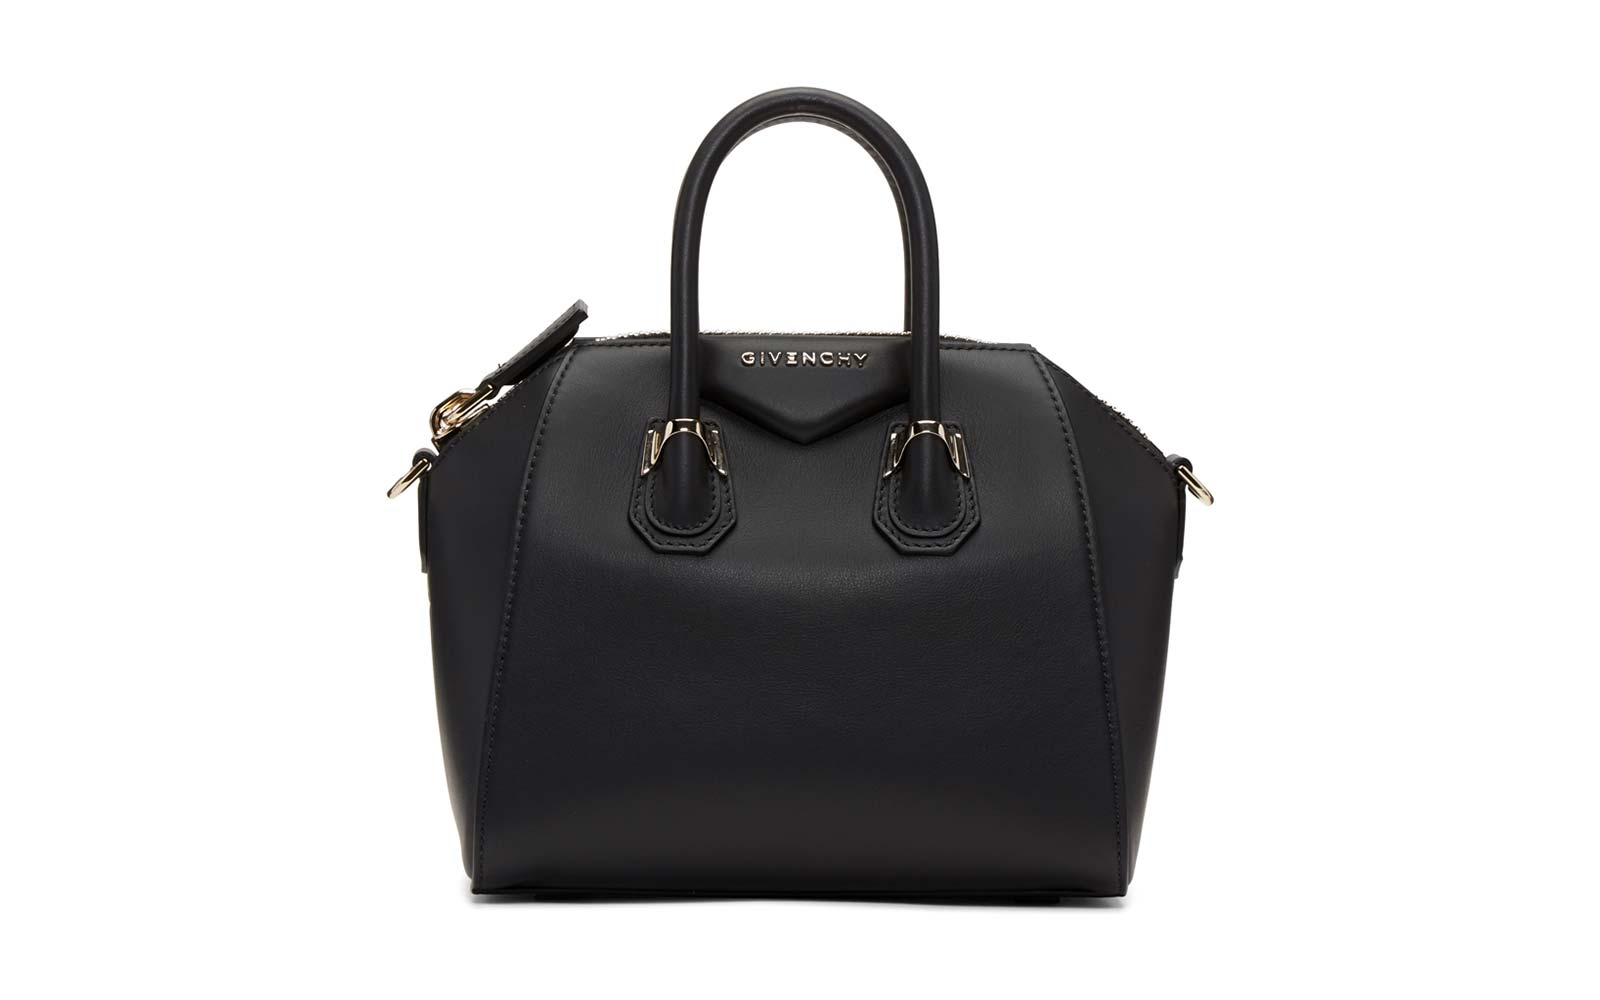 Givenchy black bag